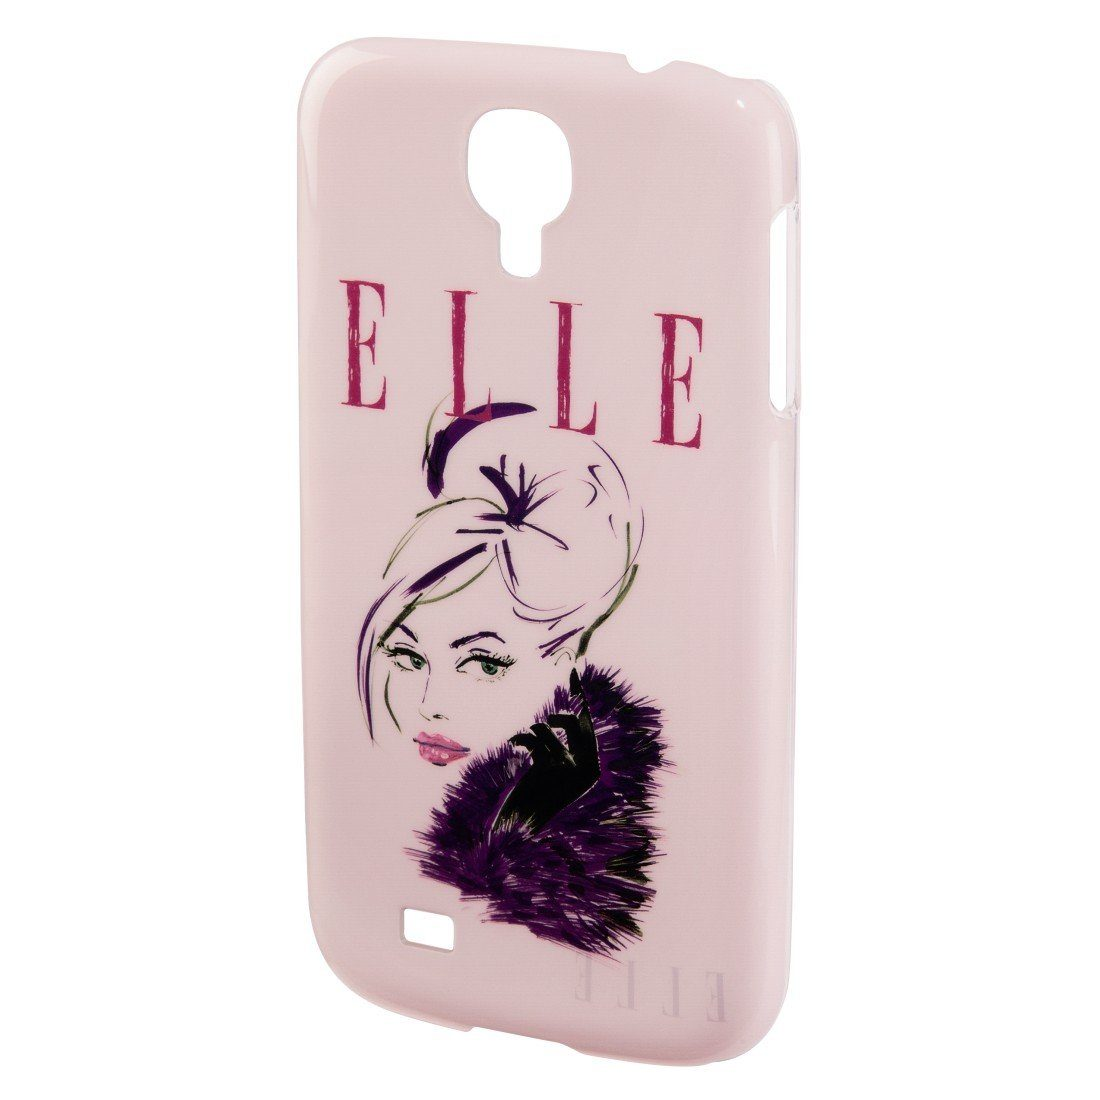 ELLE Handy-Cover Lady in Pink für Samsung Galaxy S 4, Rosa